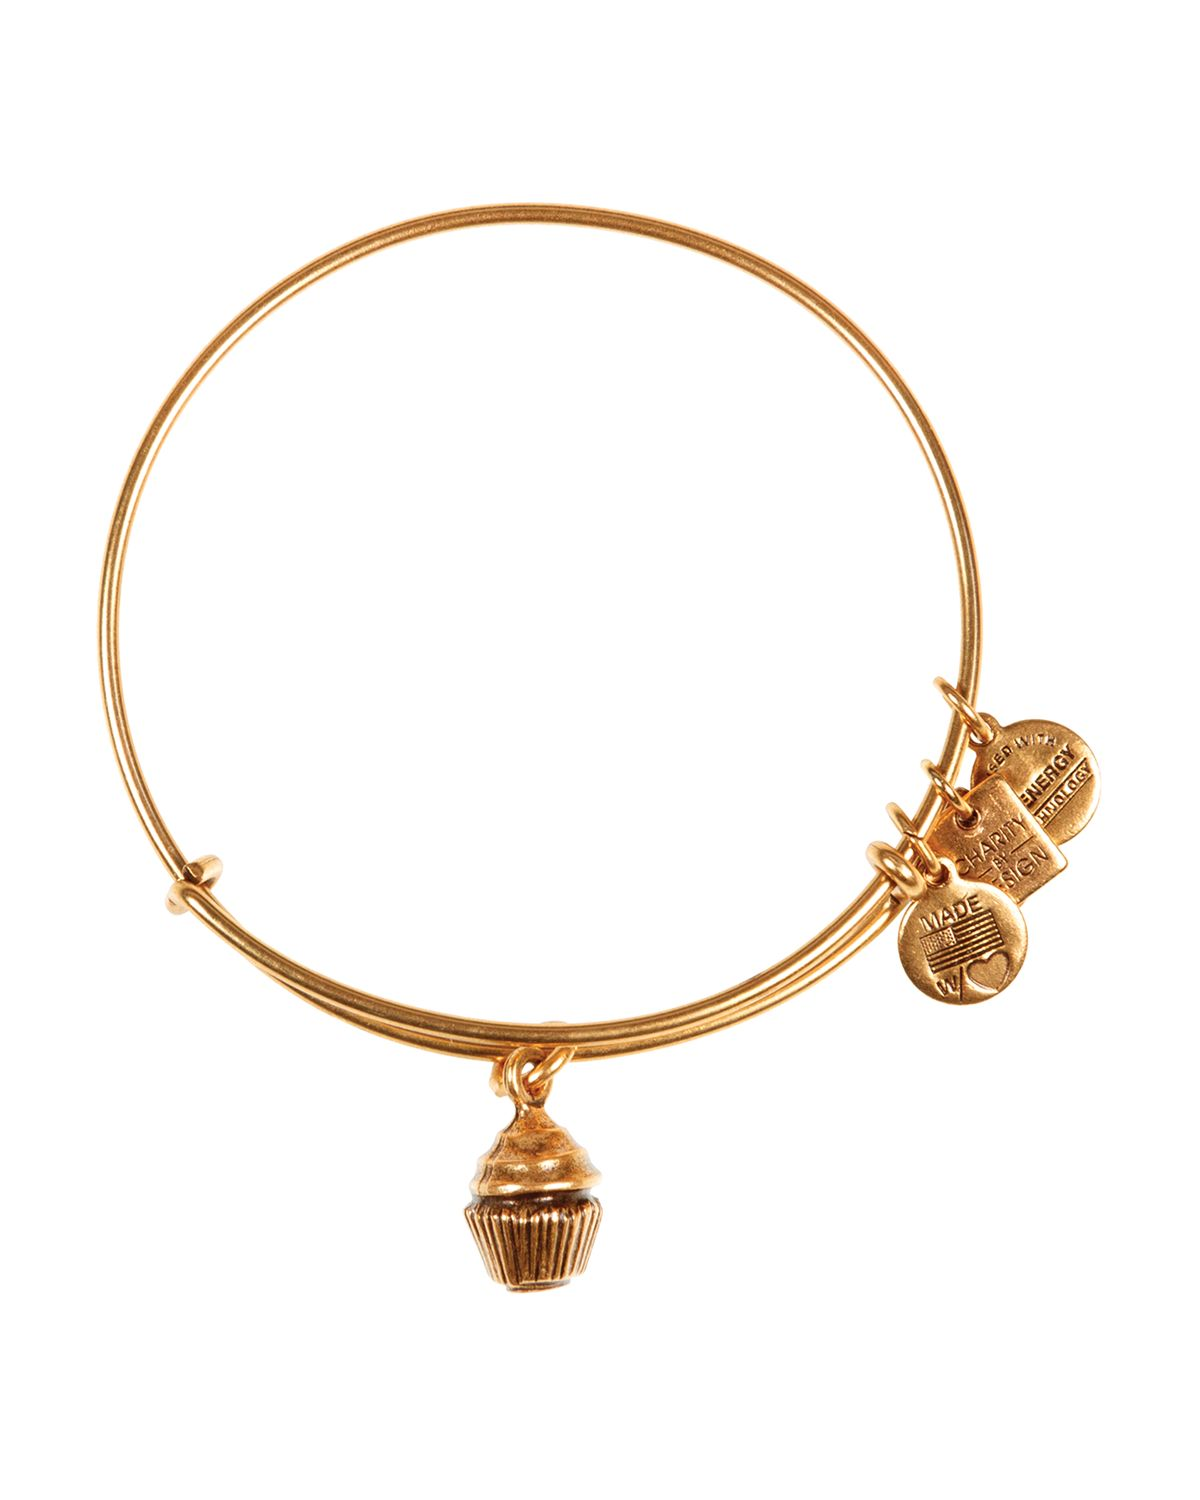 Alex And Ani Charm Bracelets: Alex And Ani Charity By Design Collection In Metallic